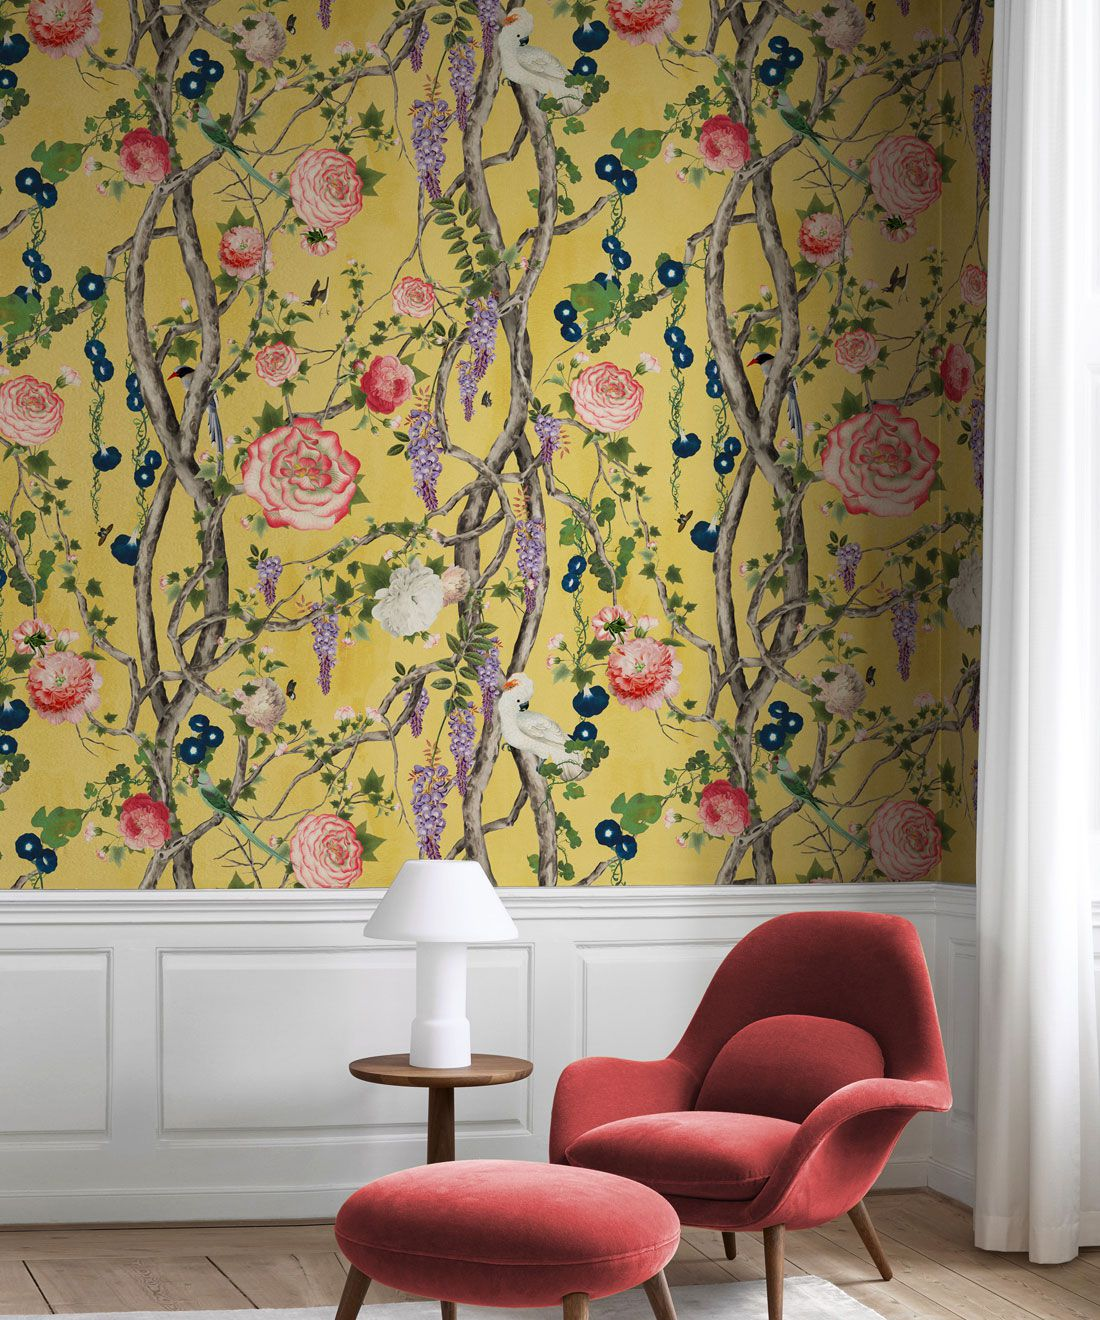 Empress Wallpaper • Romantic Wallpaper • Floral Wallpaper • Chinoiserie Wallpaper • Yellow color wallpaper insitu • Honey